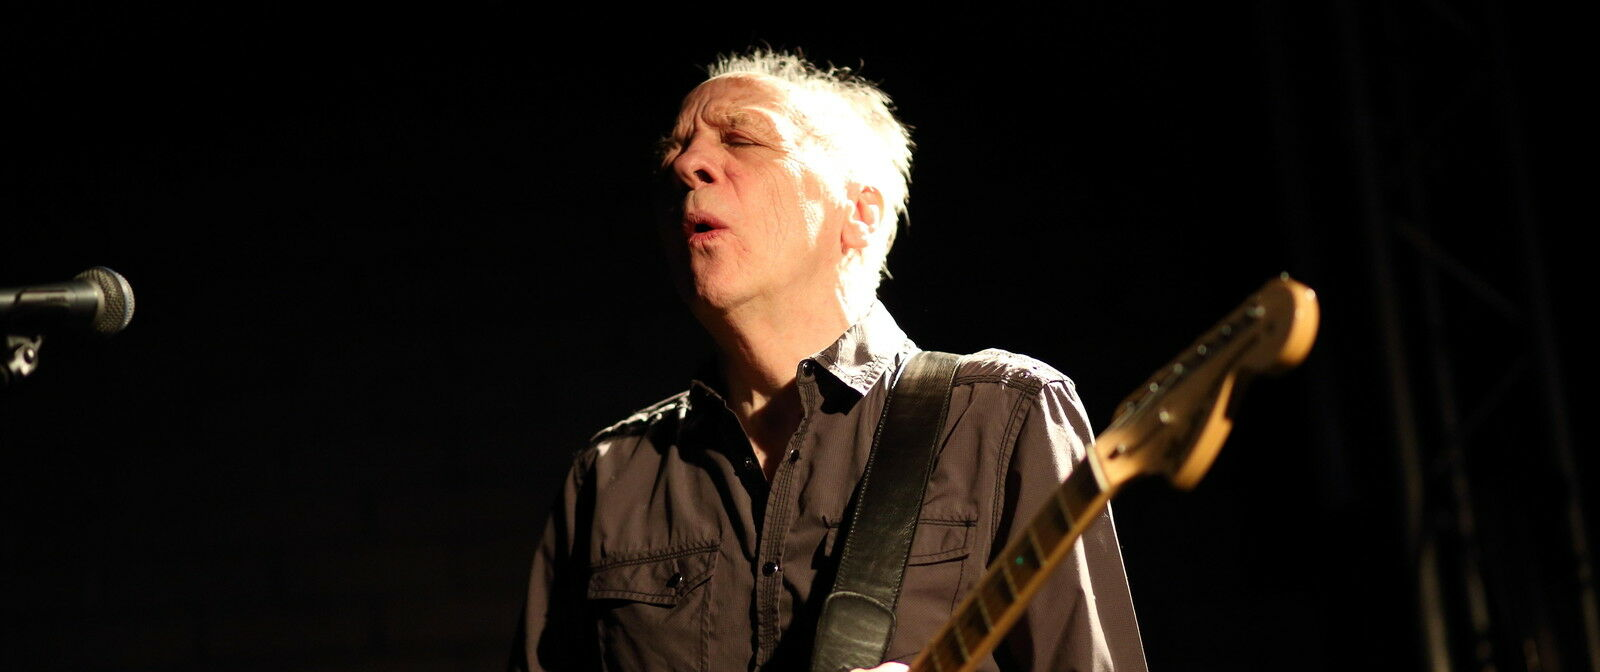 Robin Trower Tickets (21+ Event)